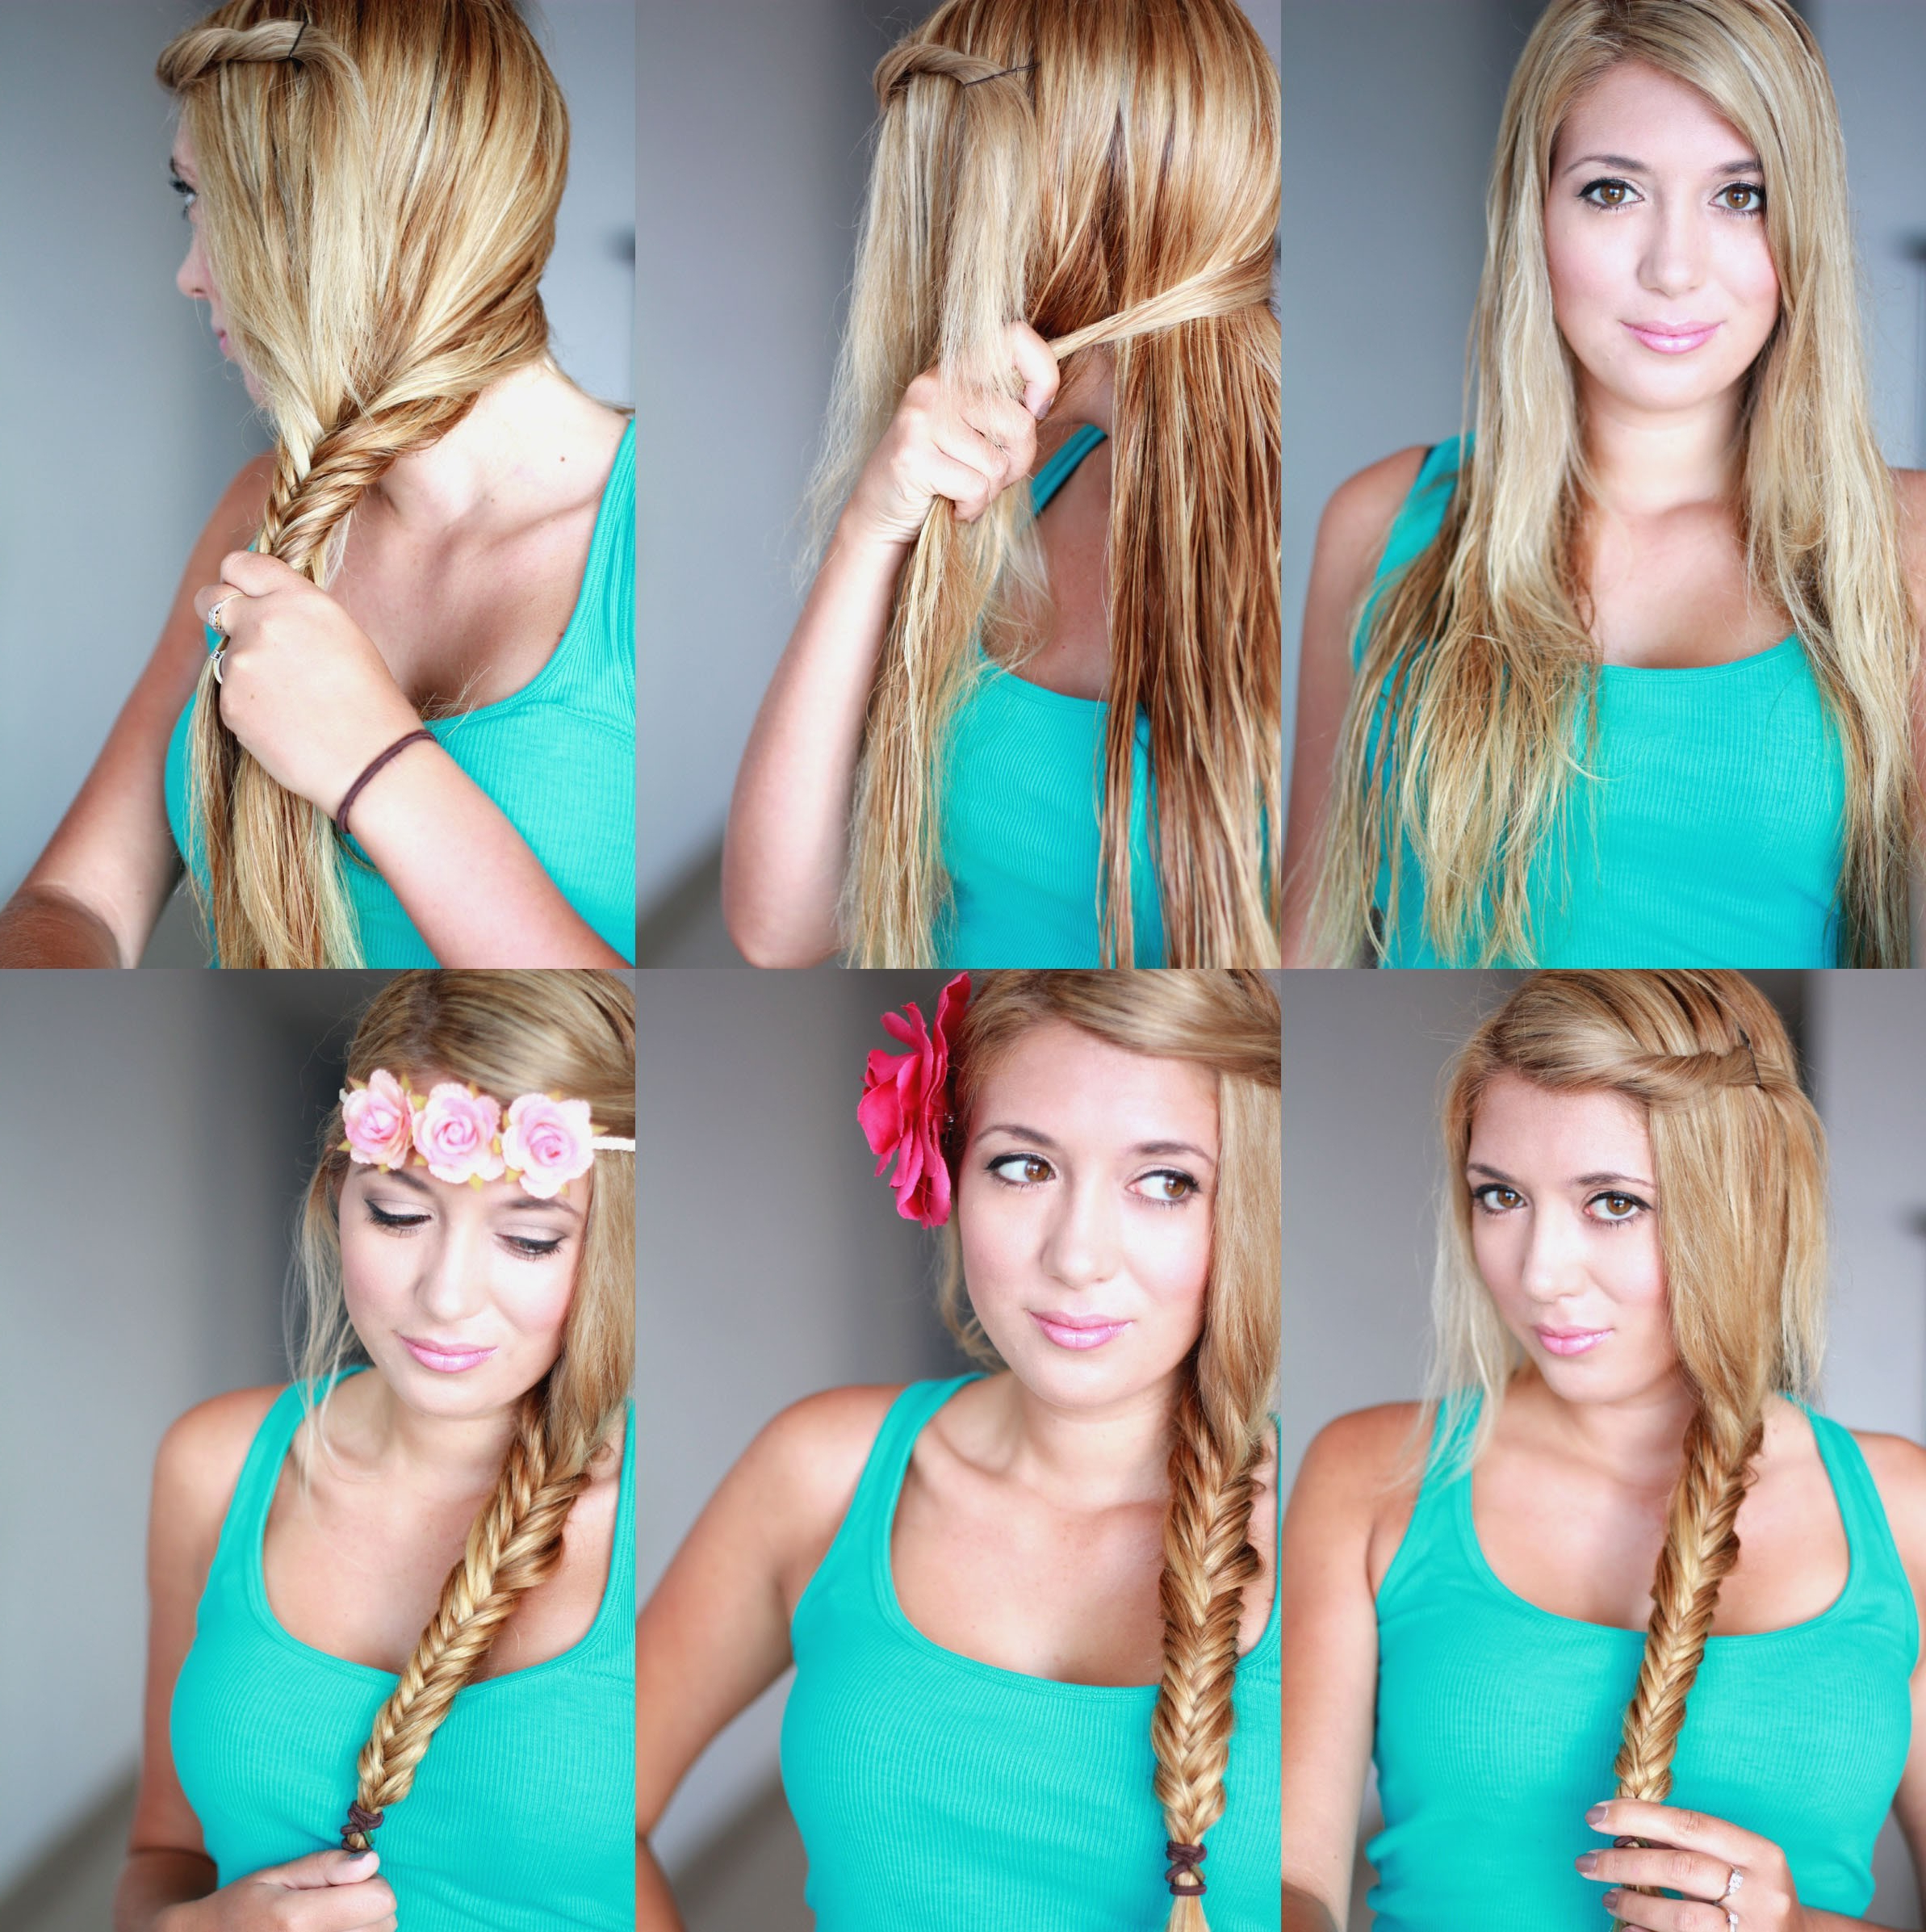 Latest Messy Side Fishtail Braided Hairstyles Intended For Cute Braided Hairstyle Tutorial For Girls: How To Fishtail (View 8 of 20)